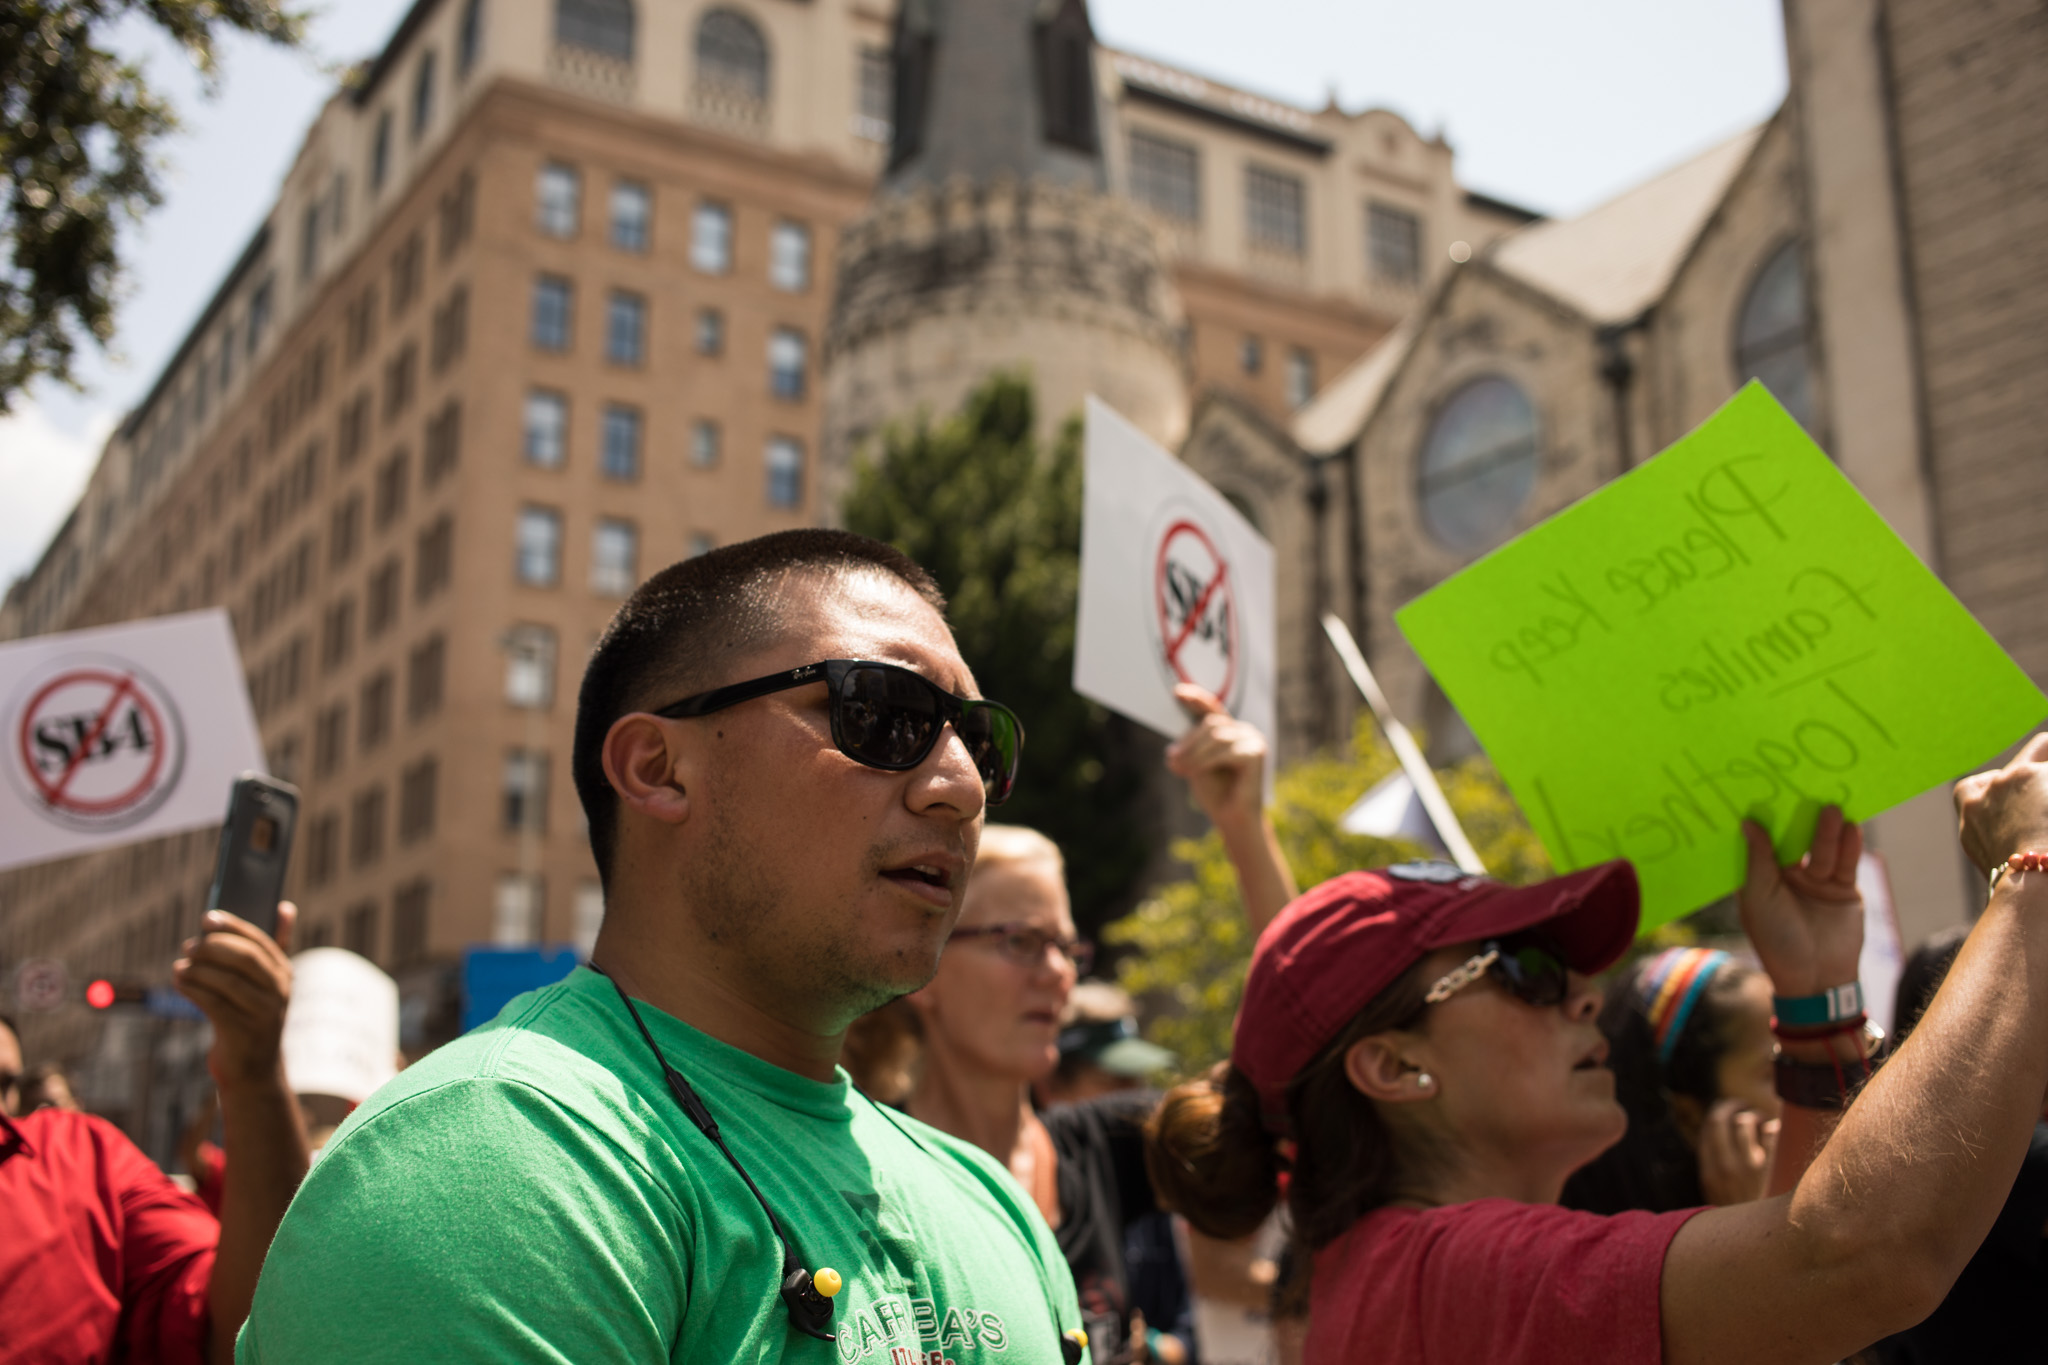 Diego Mancha Dominguez walks with the group of protesters against SB4.